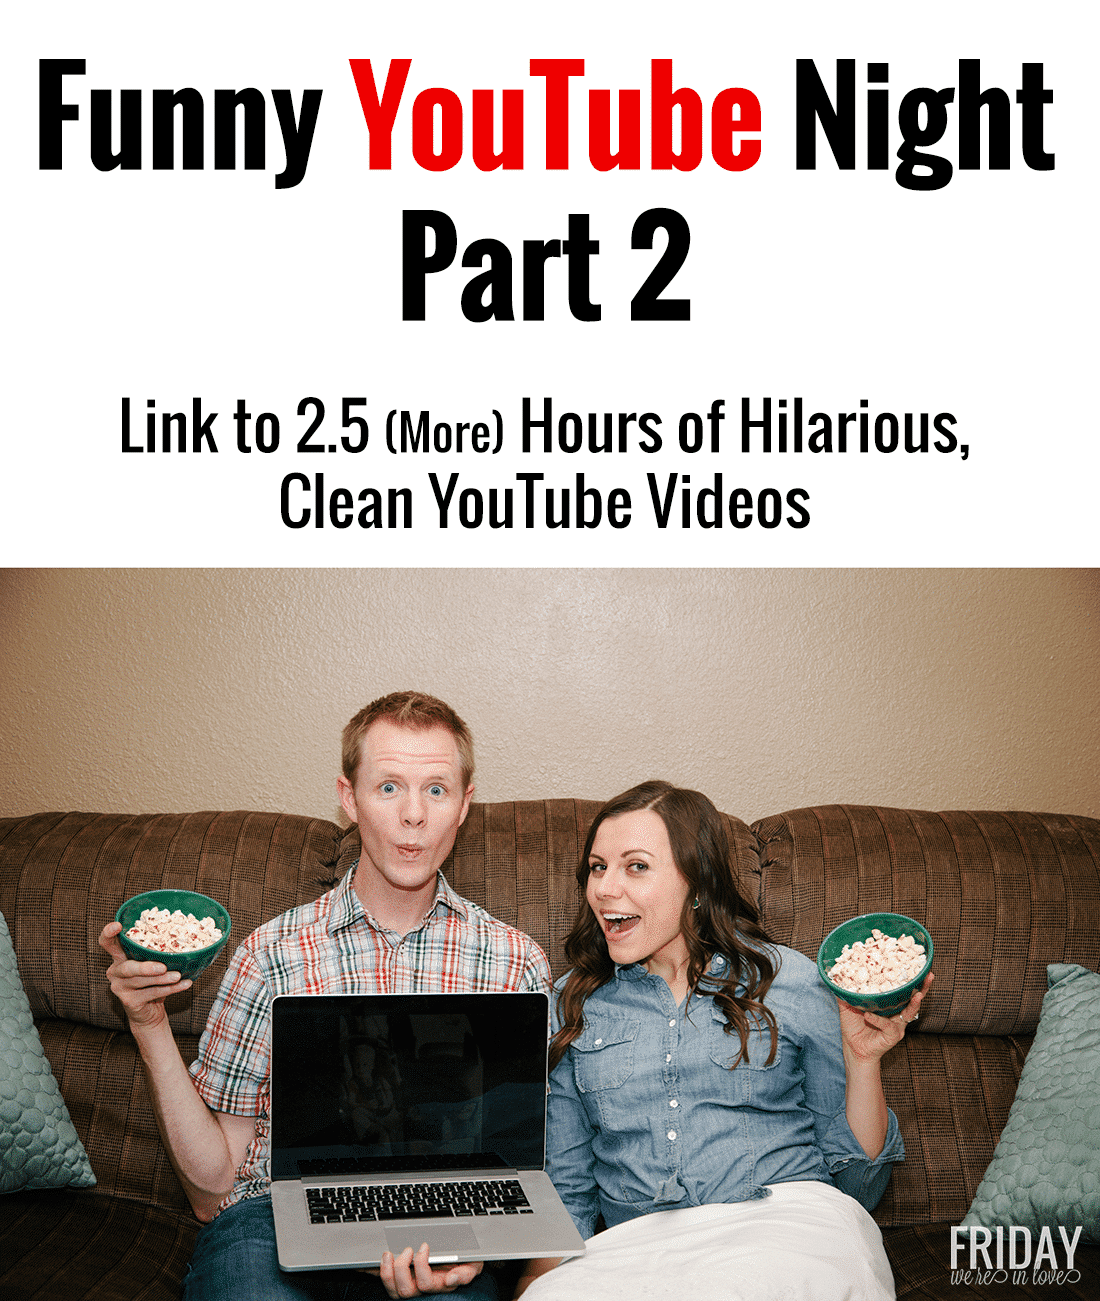 Image of: Eyebrows Slipped Funny Youtube Night Part 2 Link To 25 More Hours Of Clean Hilarious Friday Were In Love Funny Youtube Videos Night 25 Hours Of Hilarious Clean Youtube Videos